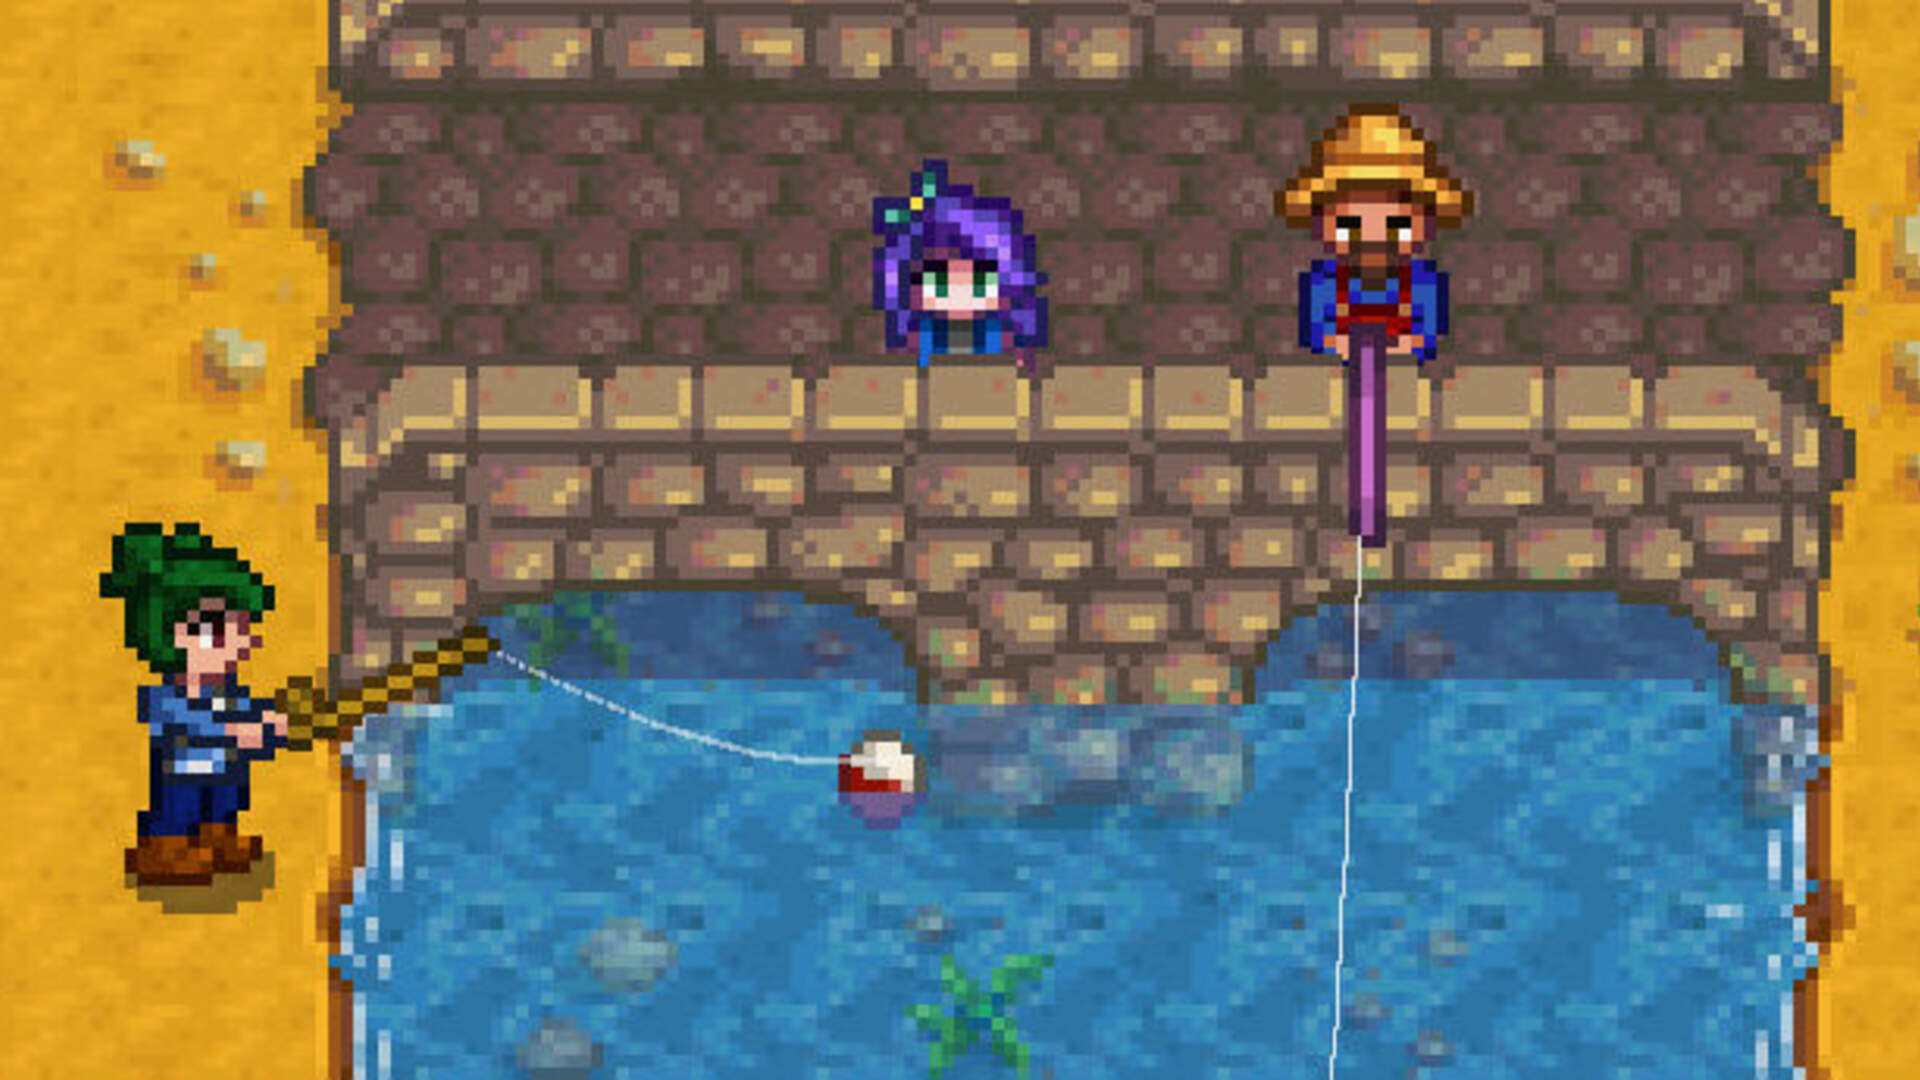 Stardew Valley Multiplayer Update Finally Has a PC Release Date